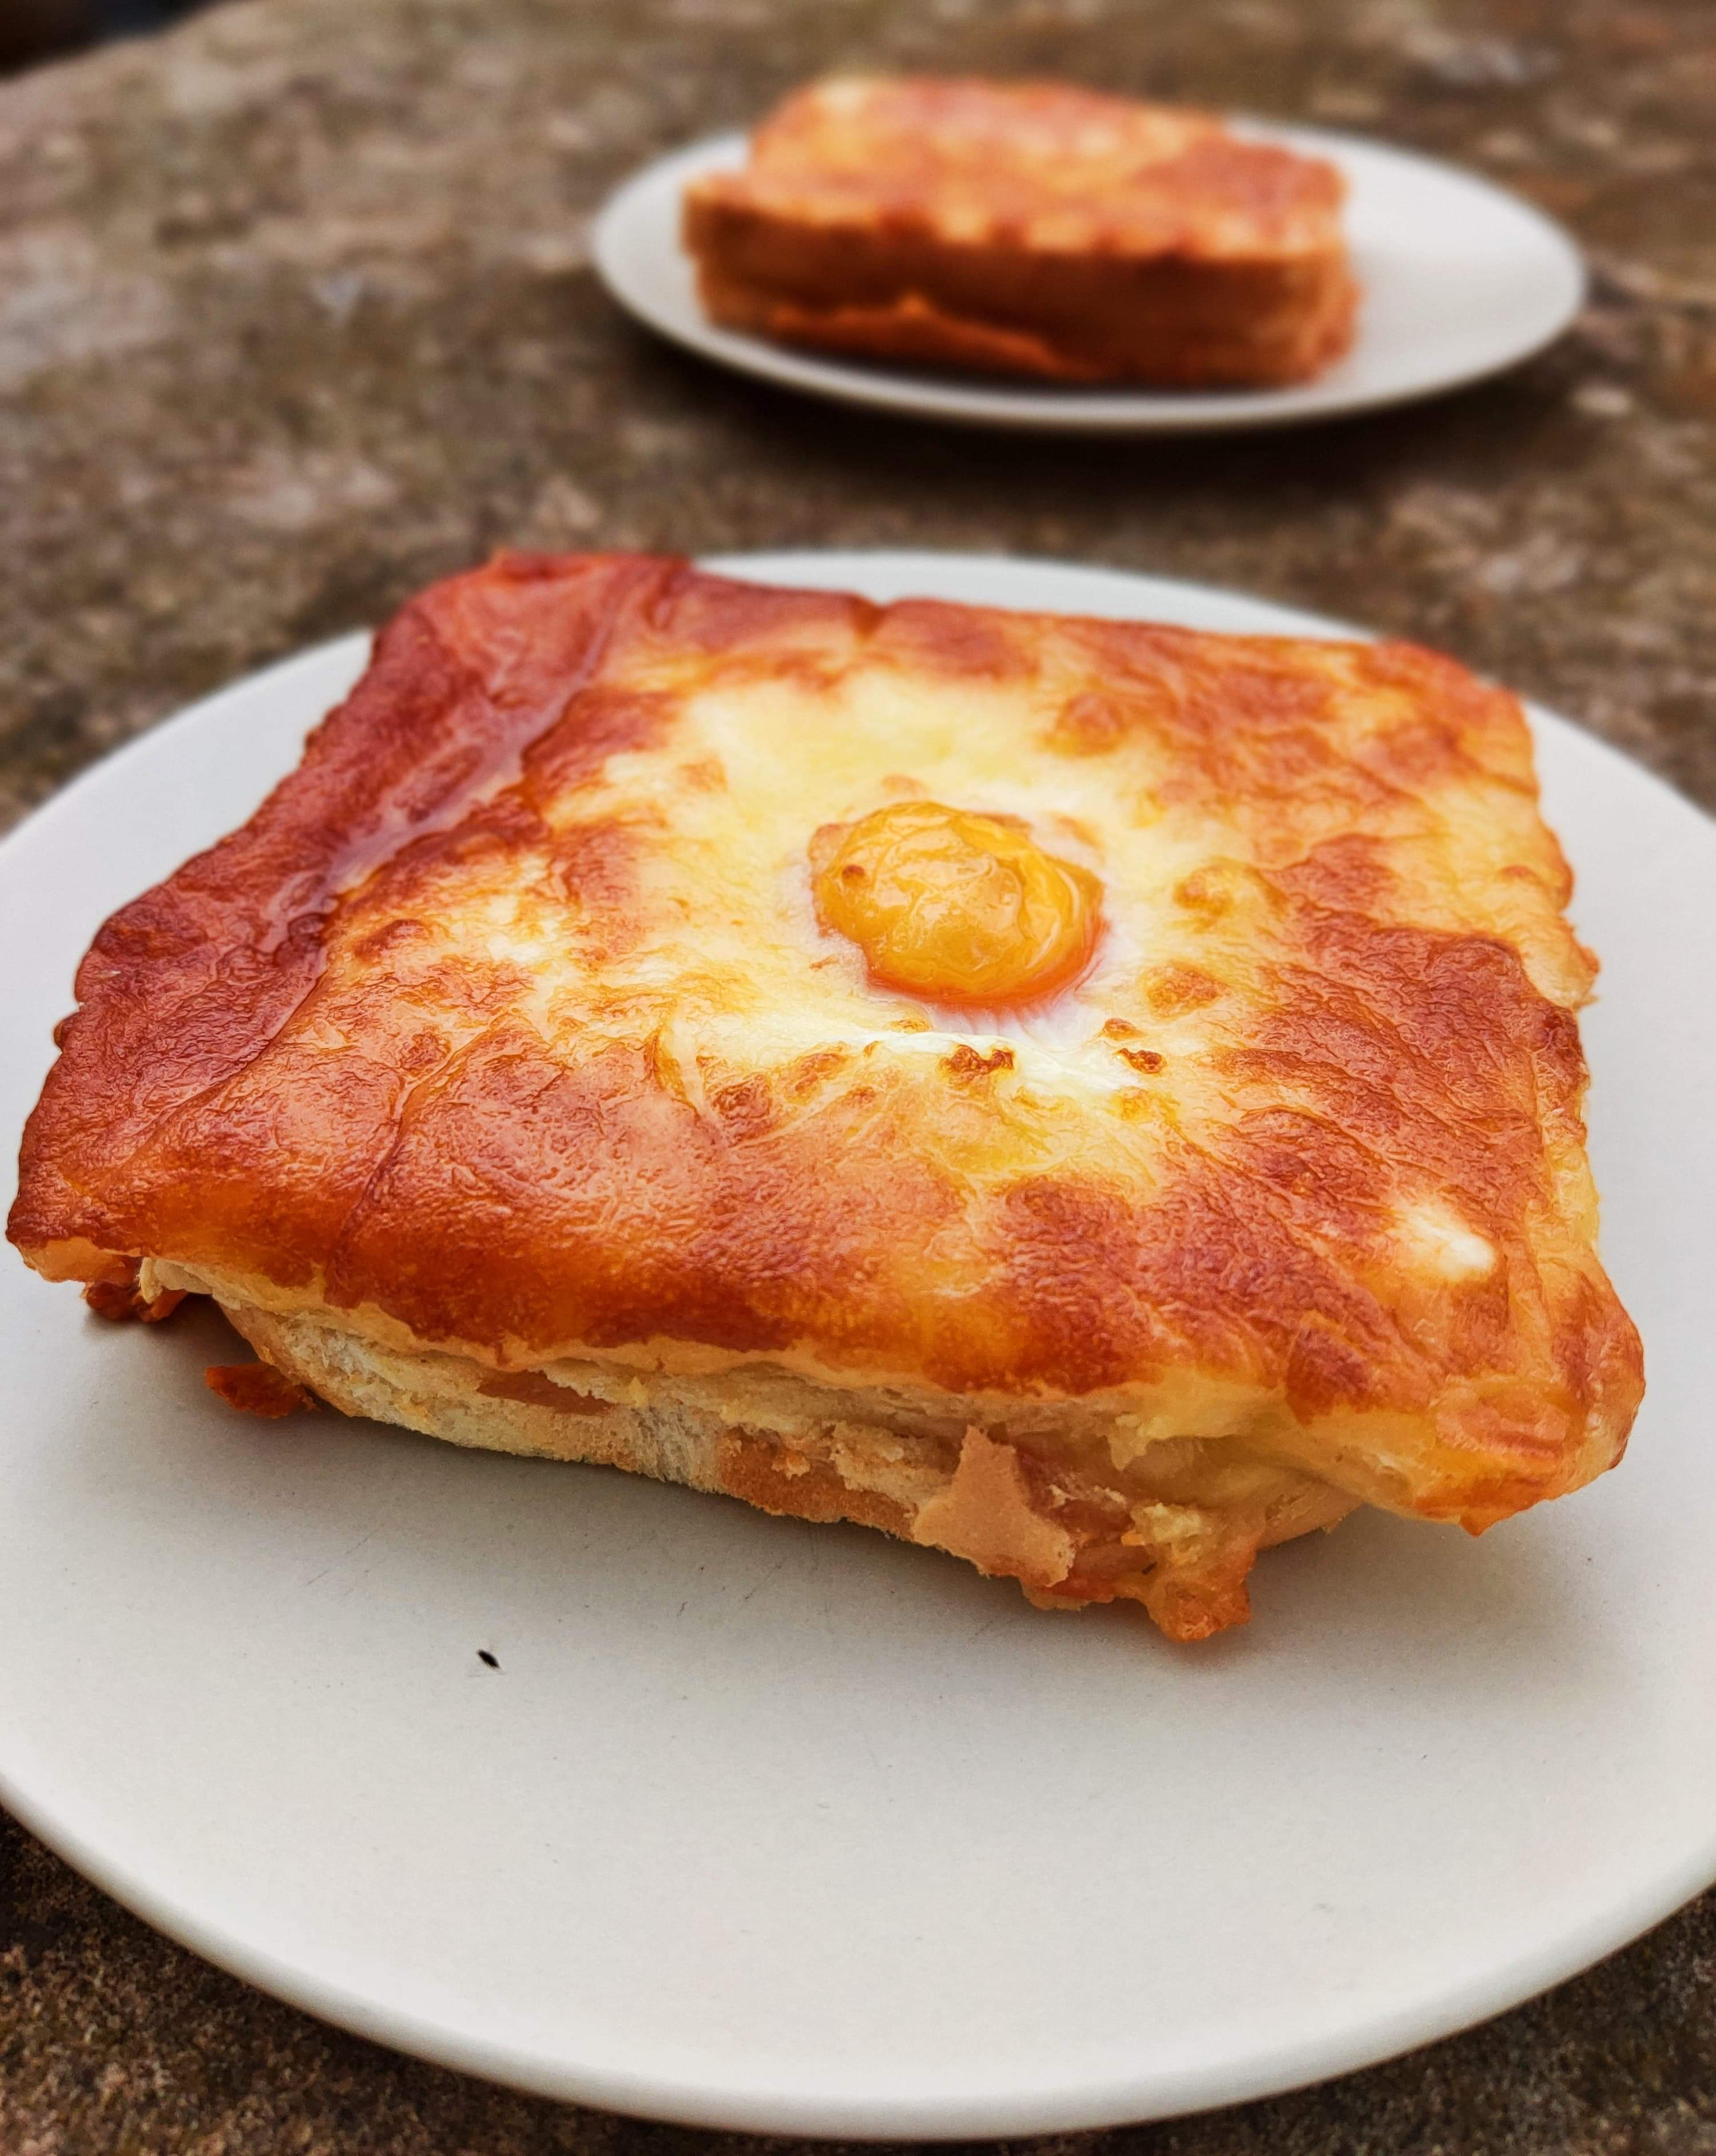 Croque Madame (bake at home, 10mins on 210°)